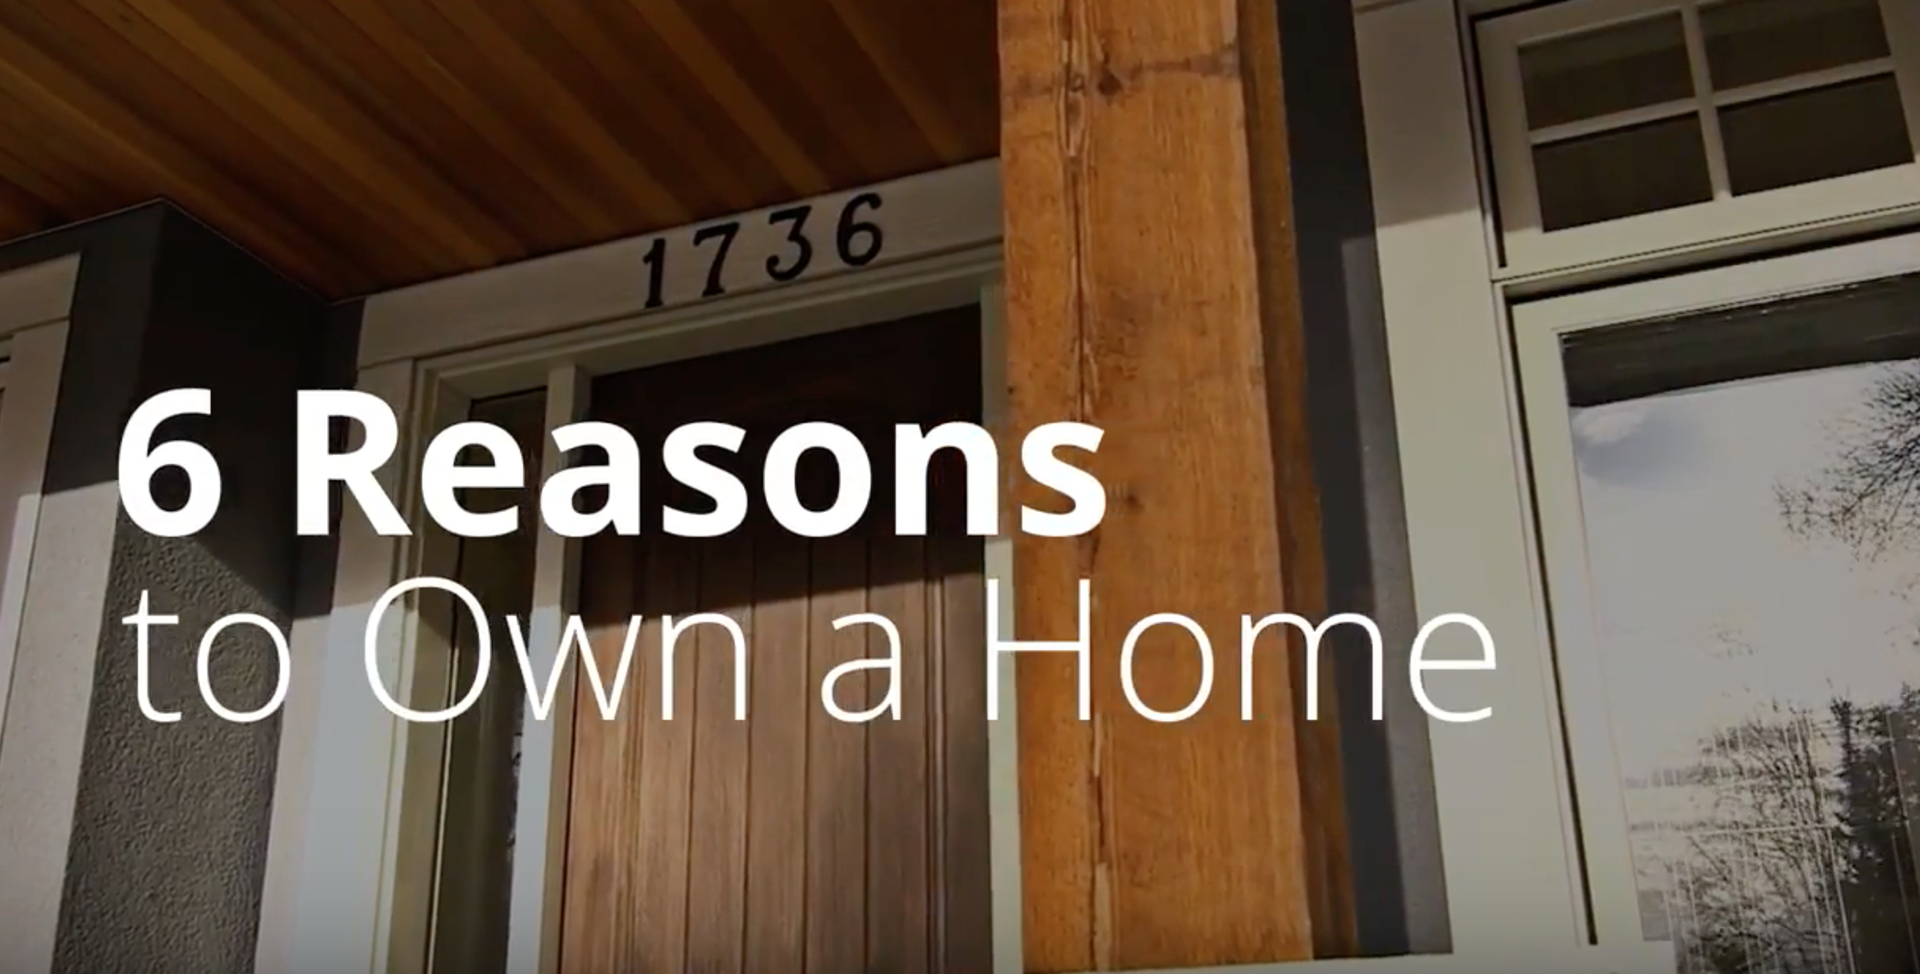 #MondayMinute: 6 Reasons to own a home